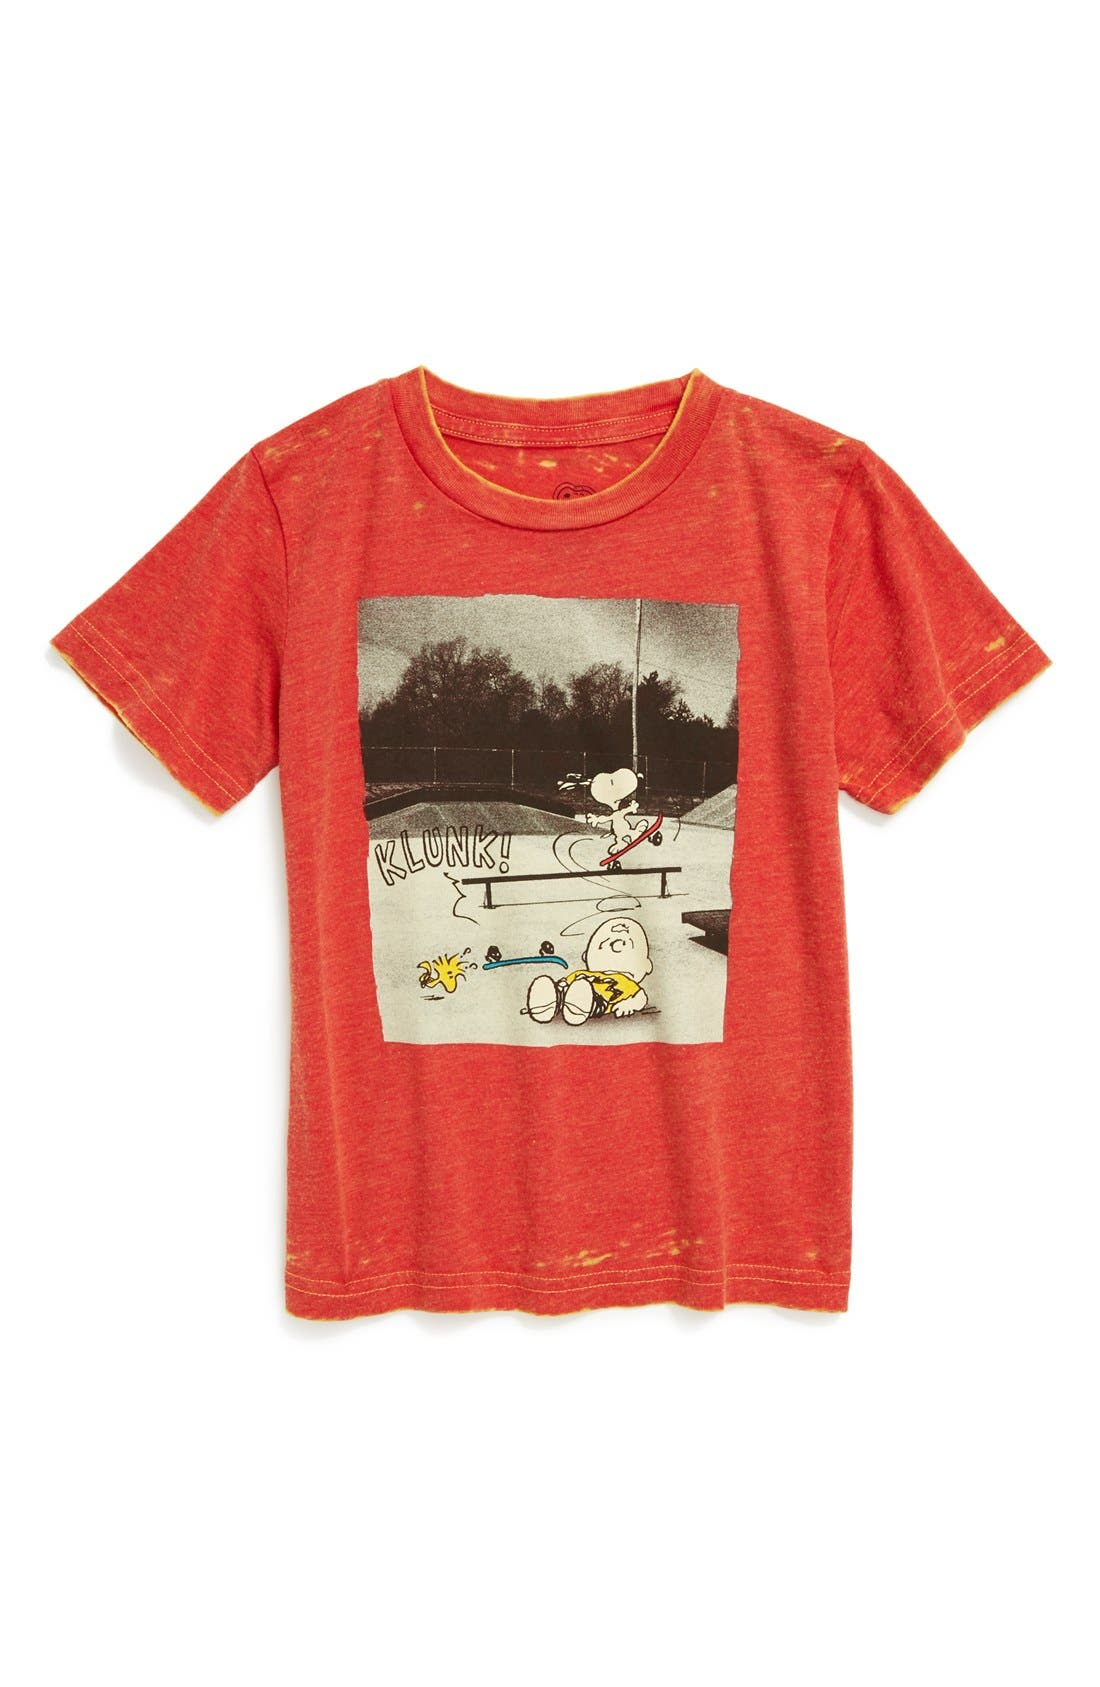 Main Image - Jem 'Charlie Brown™' Graphic T-Shirt (Toddler Boys)